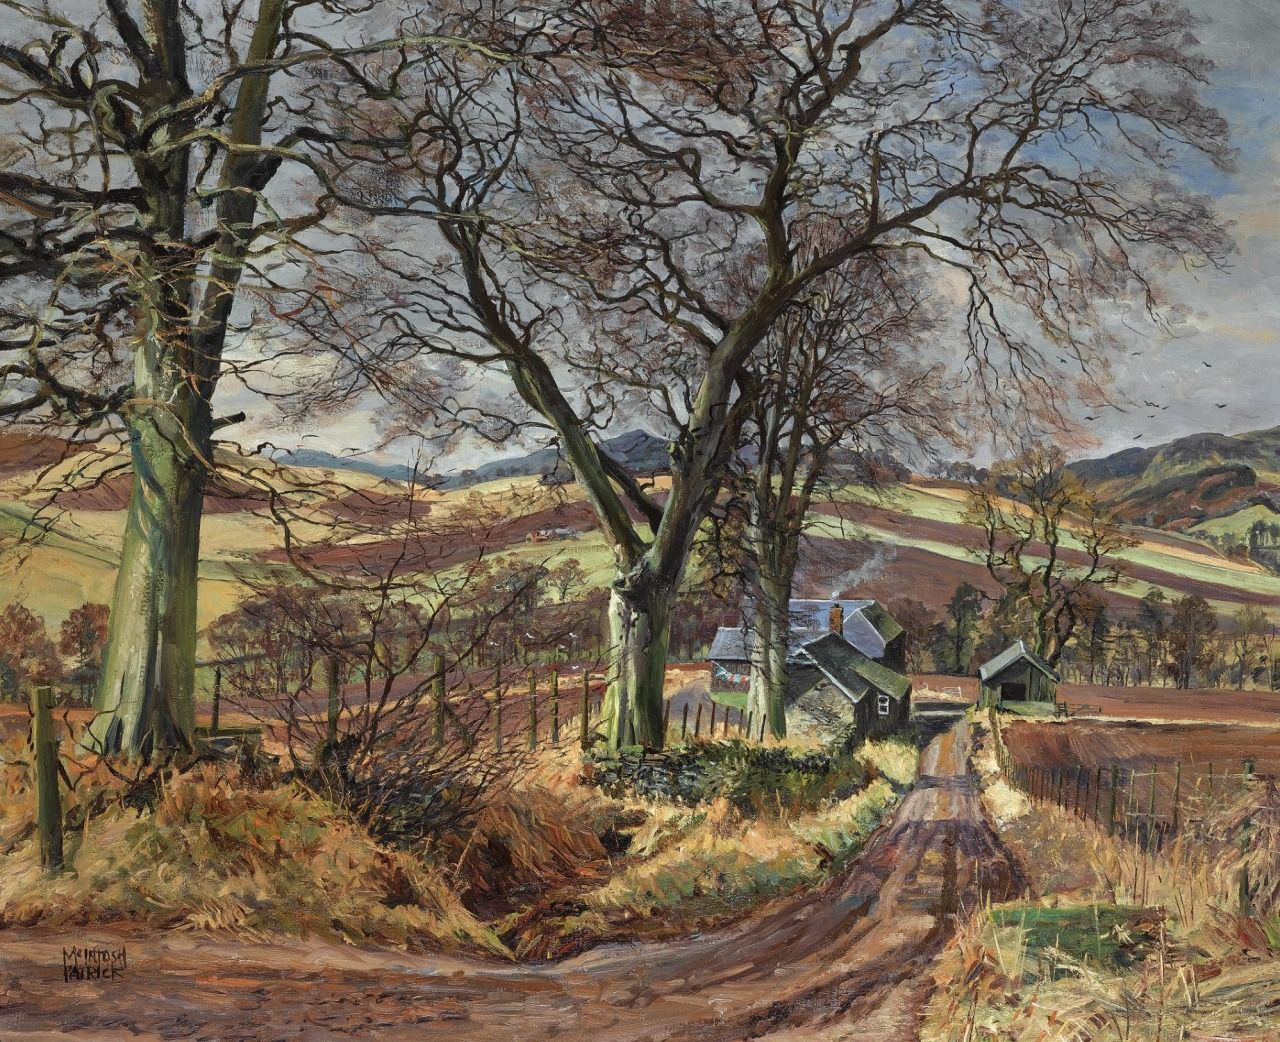 James McIntosh Patrick (1907-1998) - Wellbank, Rossie Priory. Oil on canvas, 63.5 x 66 cm.